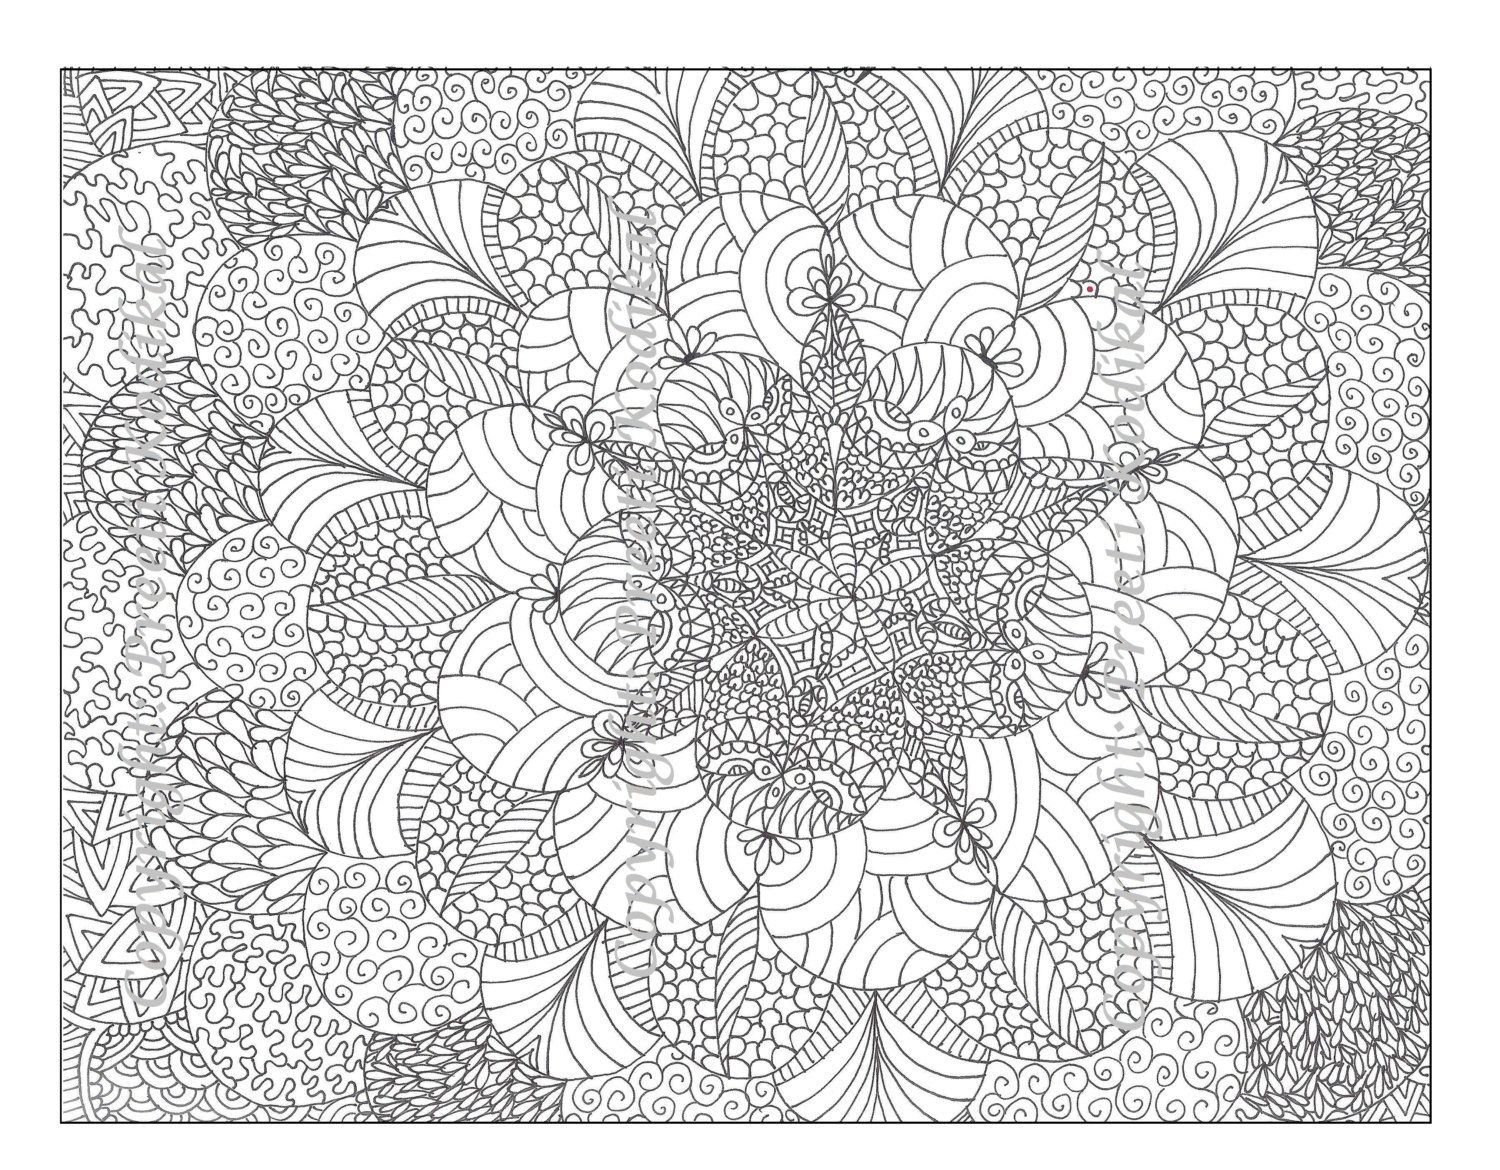 Colouring sheets hard - Printable Hard Coloring Pages For S High Quality Coloring Pages